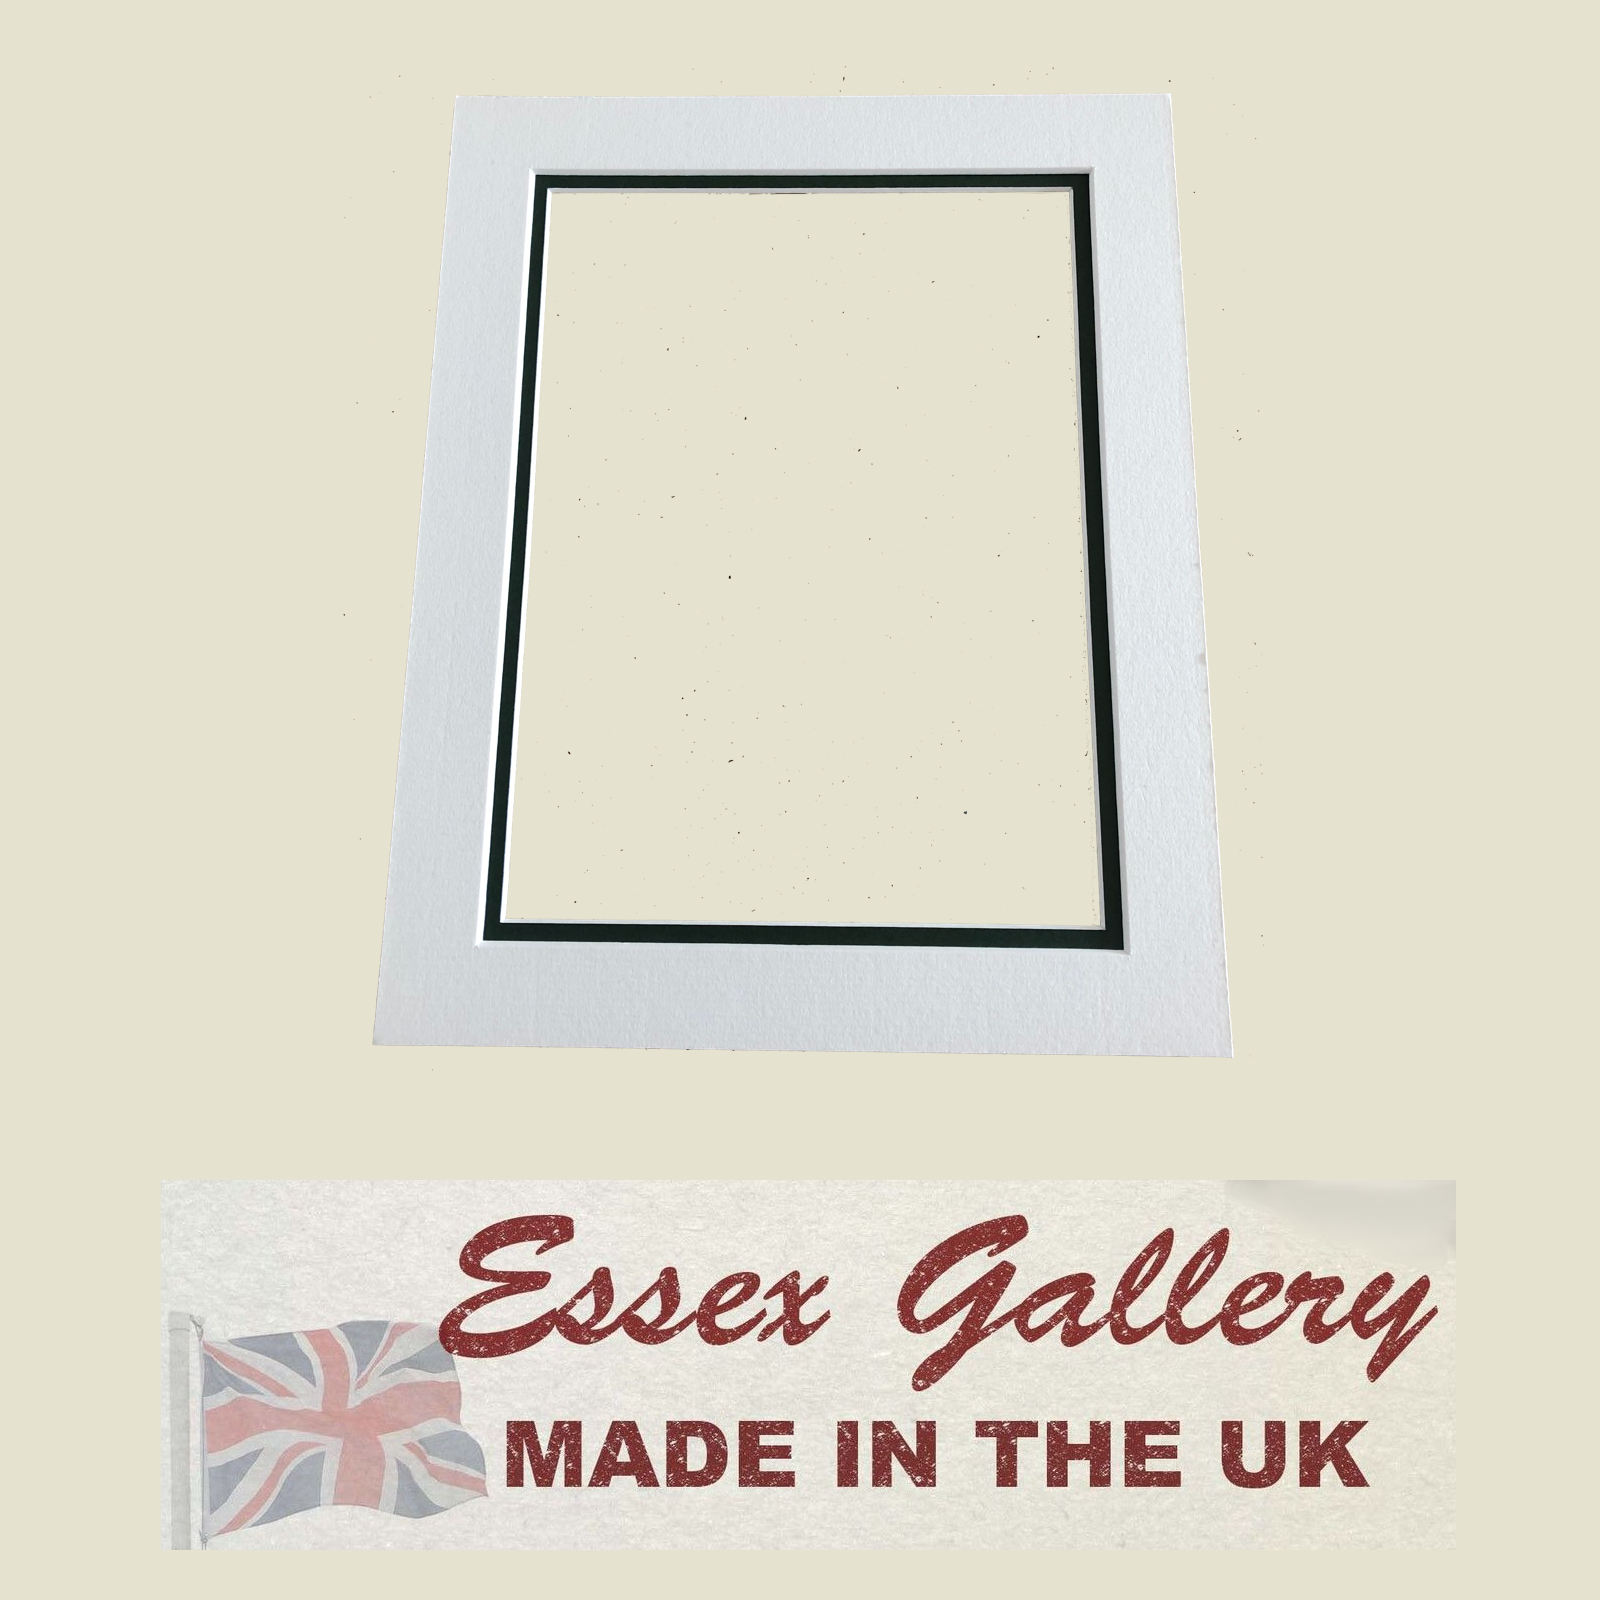 Bespoke Picture & Photo Frame Double Mounts - Cut to Any Size (Max Size 20x16) 6